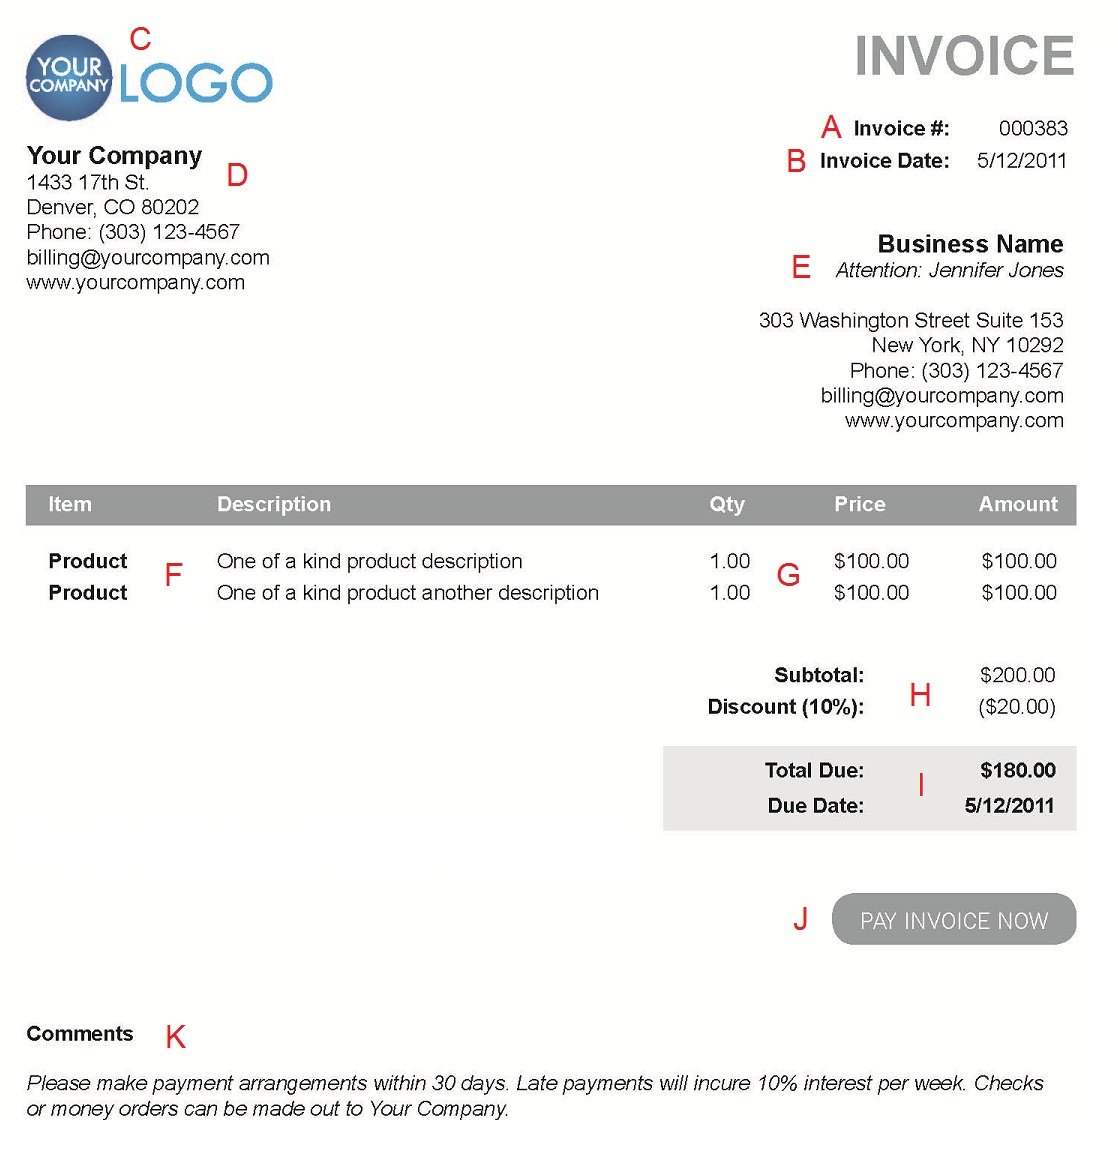 Carterusaus  Marvelous The  Different Sections Of An Electronic Payment Invoice With Extraordinary A  With Breathtaking Simple Invoice Template Uk Also Form Invoice Excel In Addition Tax Invoice Requirement And Free Invoice Template Open Office As Well As Bill And Invoice Additionally Automated Invoice Processing Software From Paysimplecom With Carterusaus  Extraordinary The  Different Sections Of An Electronic Payment Invoice With Breathtaking A  And Marvelous Simple Invoice Template Uk Also Form Invoice Excel In Addition Tax Invoice Requirement From Paysimplecom